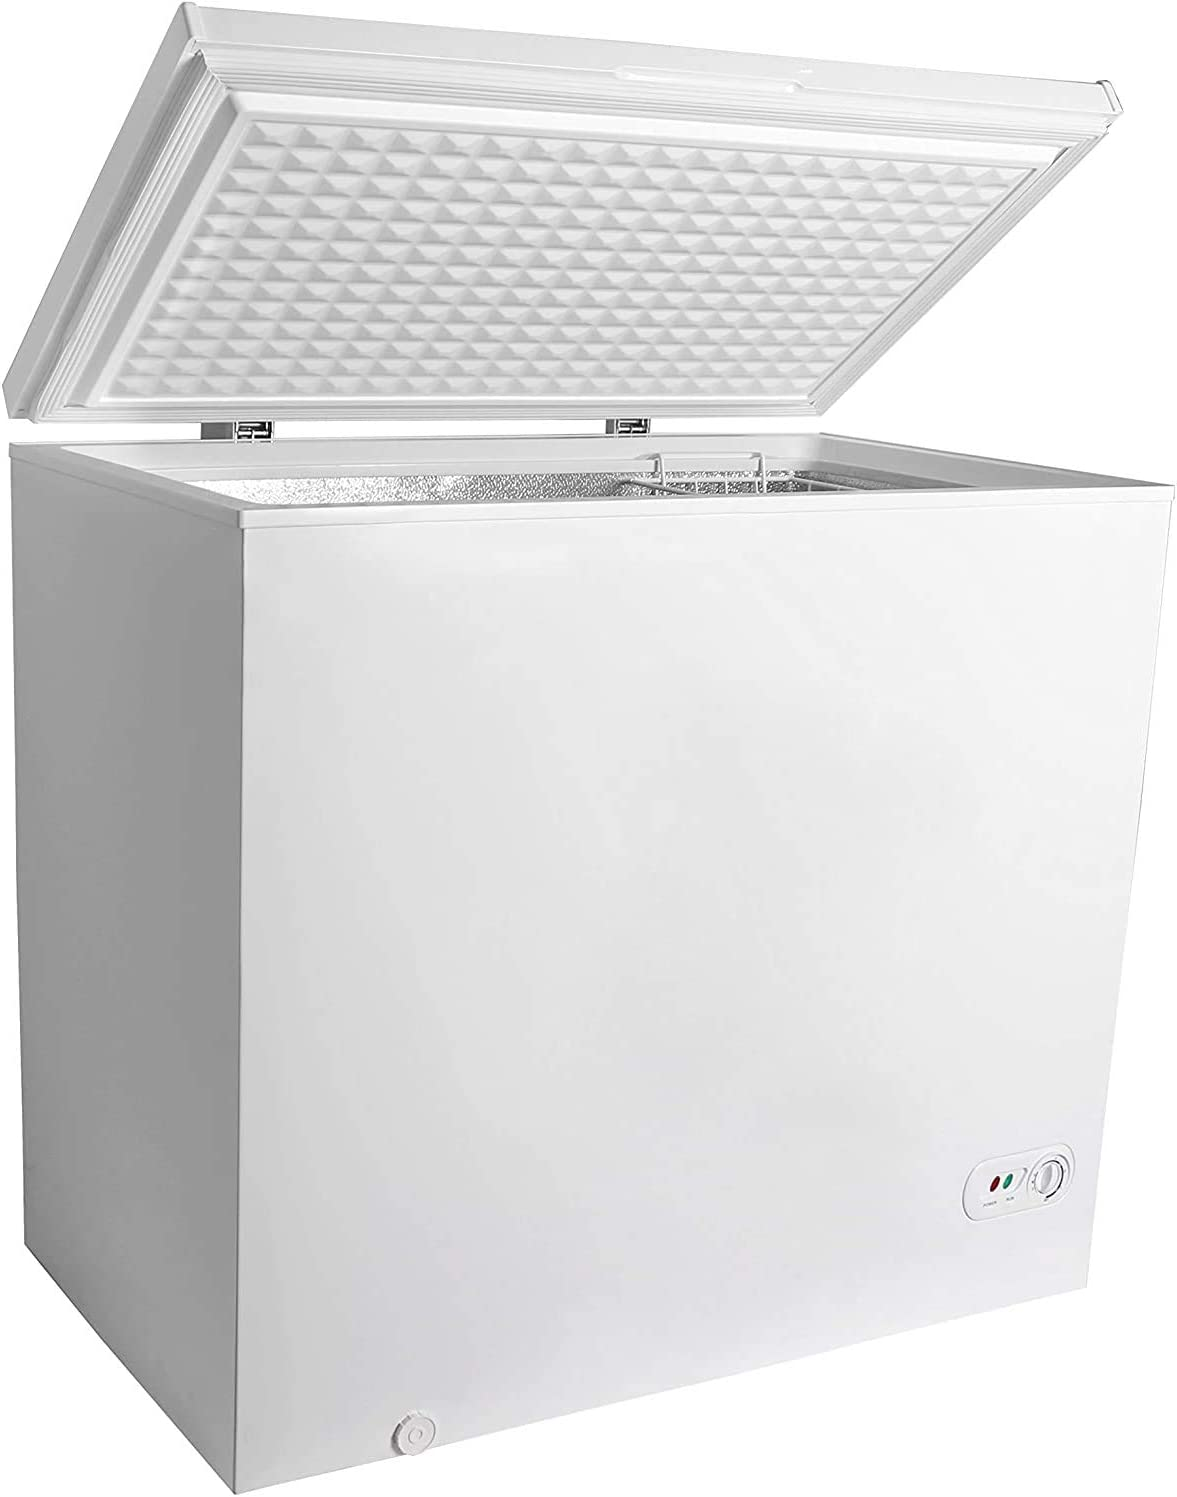 7.0 Cubic Feet Chest Freezer with Removable Basket, from 6.8℉ to -4℉ Free Standing Compact Fridge Freezer for Home/Kitchen/Office/Bar (WHITE)…